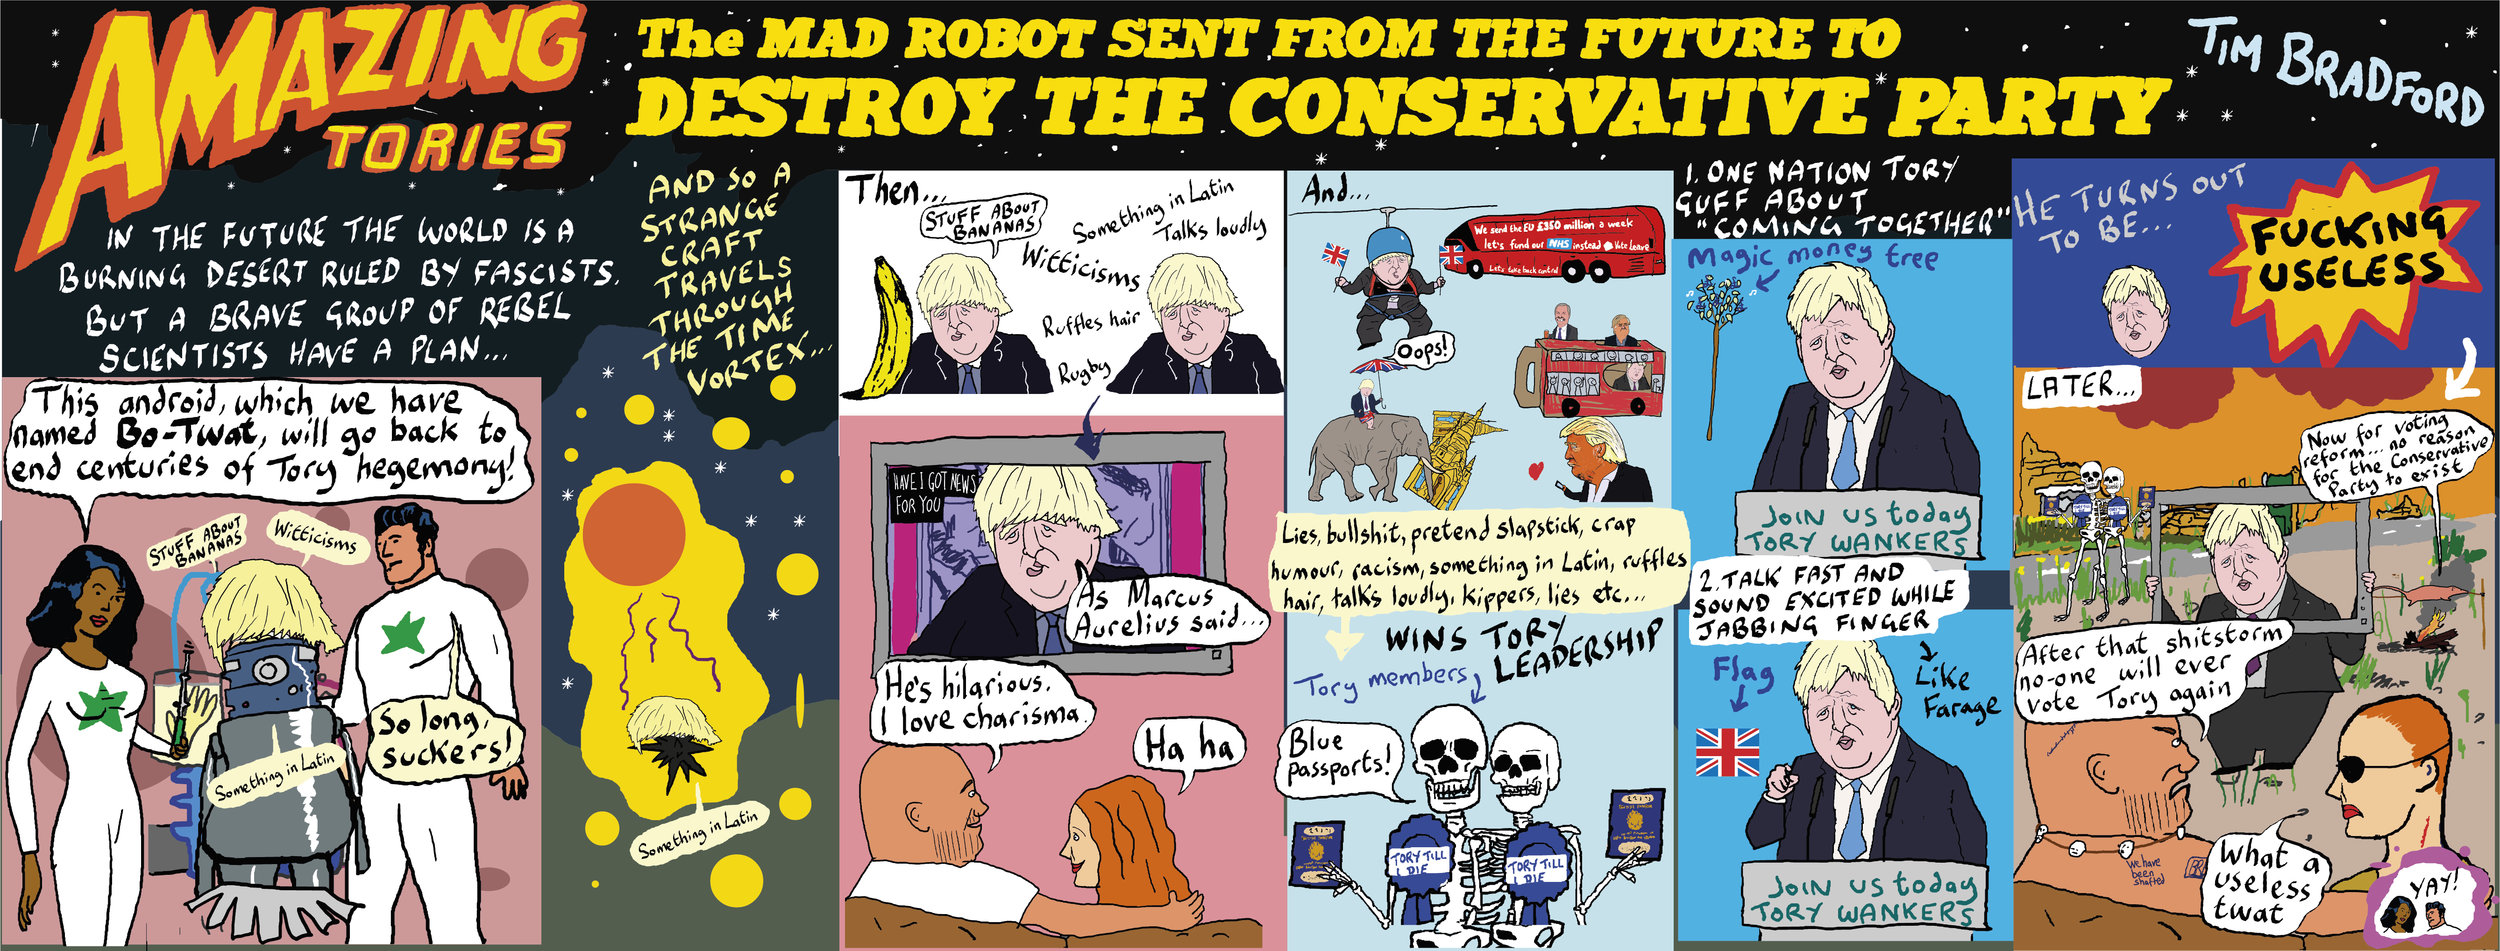 The Mad Robot Sent From The Future To Destroy The Conservative Party - 23/07/19